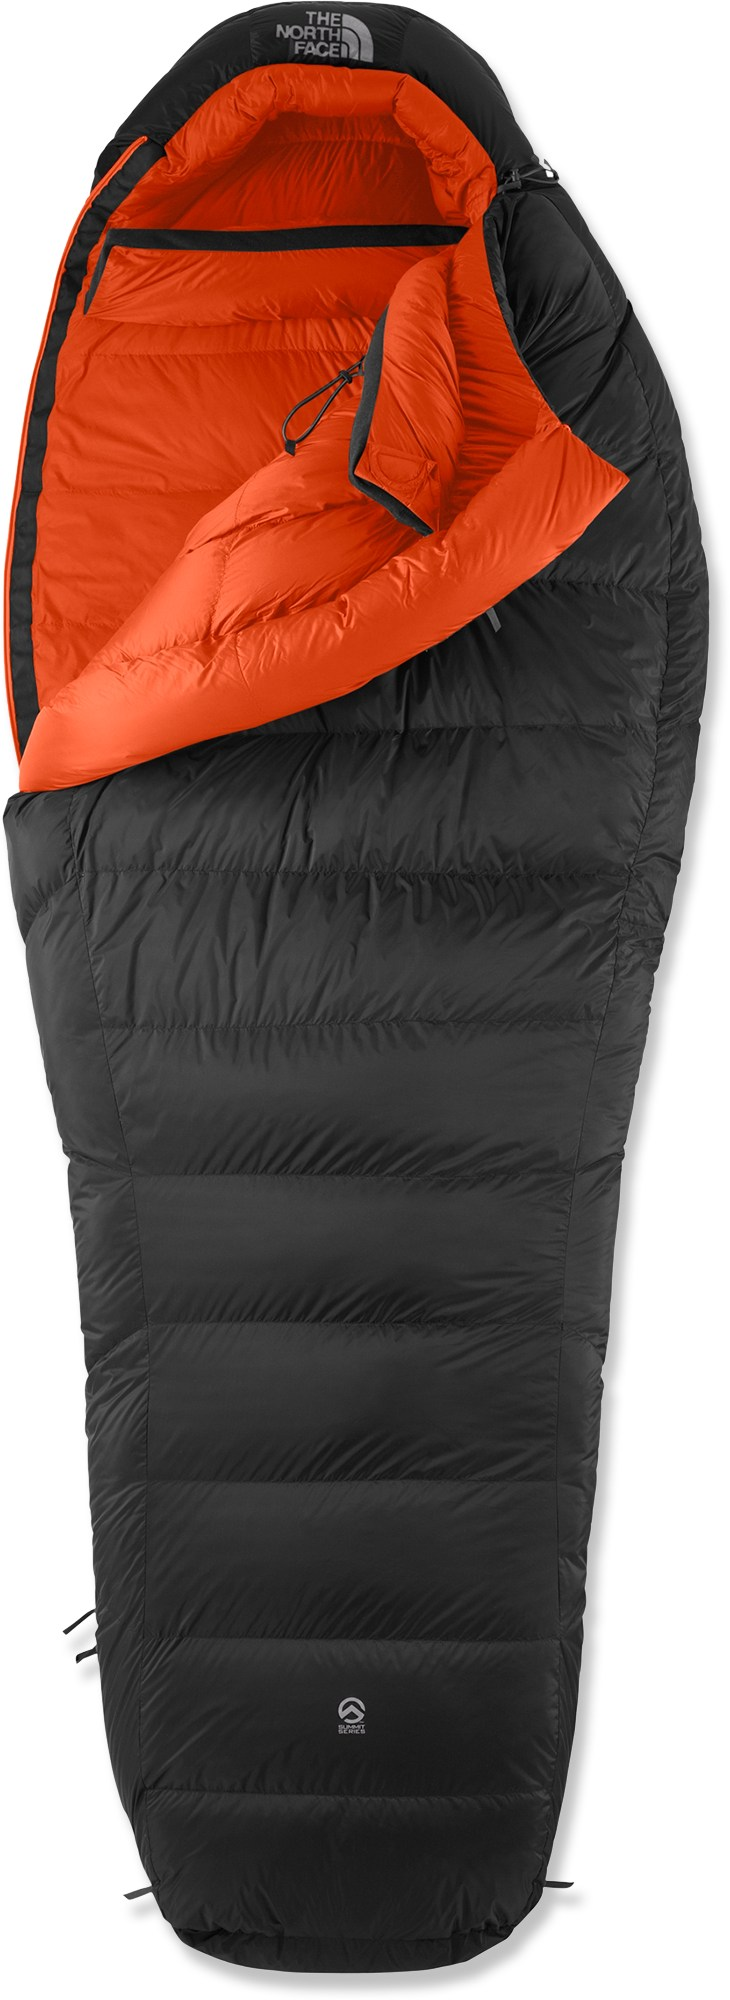 Camp and Hike The North Face Inferno -20 Sleeping Bag